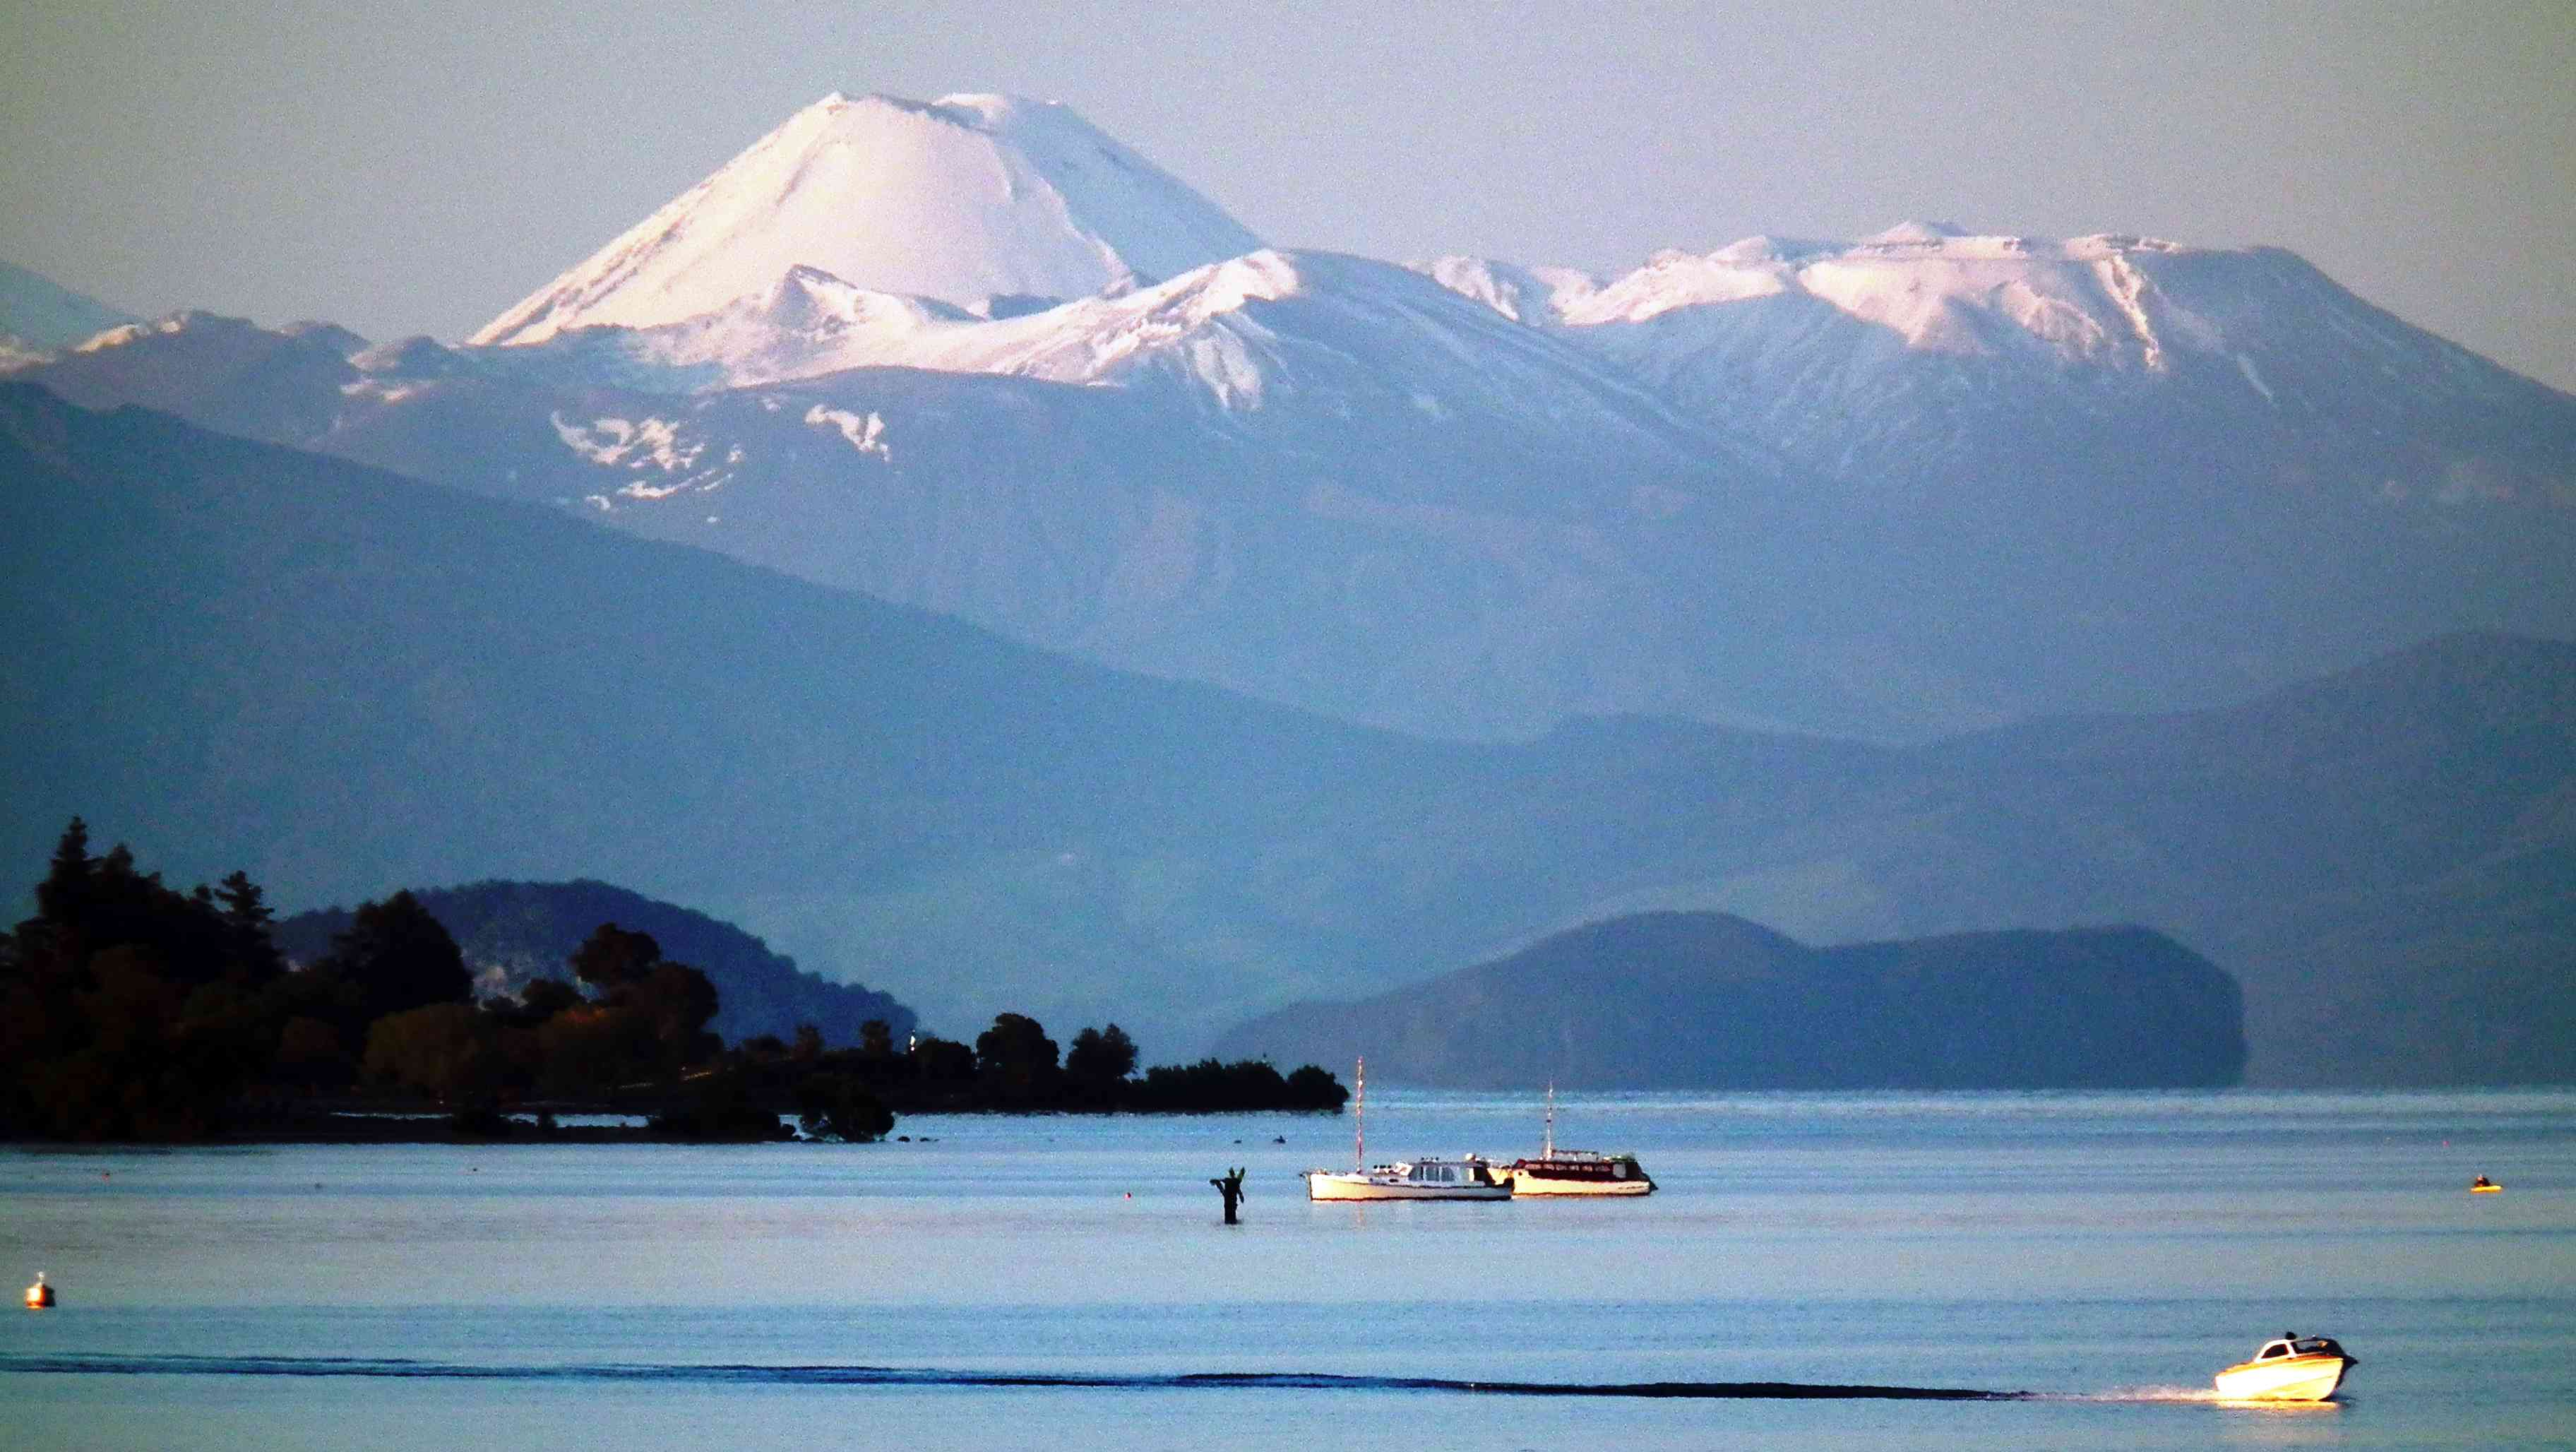 snowy mountains with a lake and boats in foreground